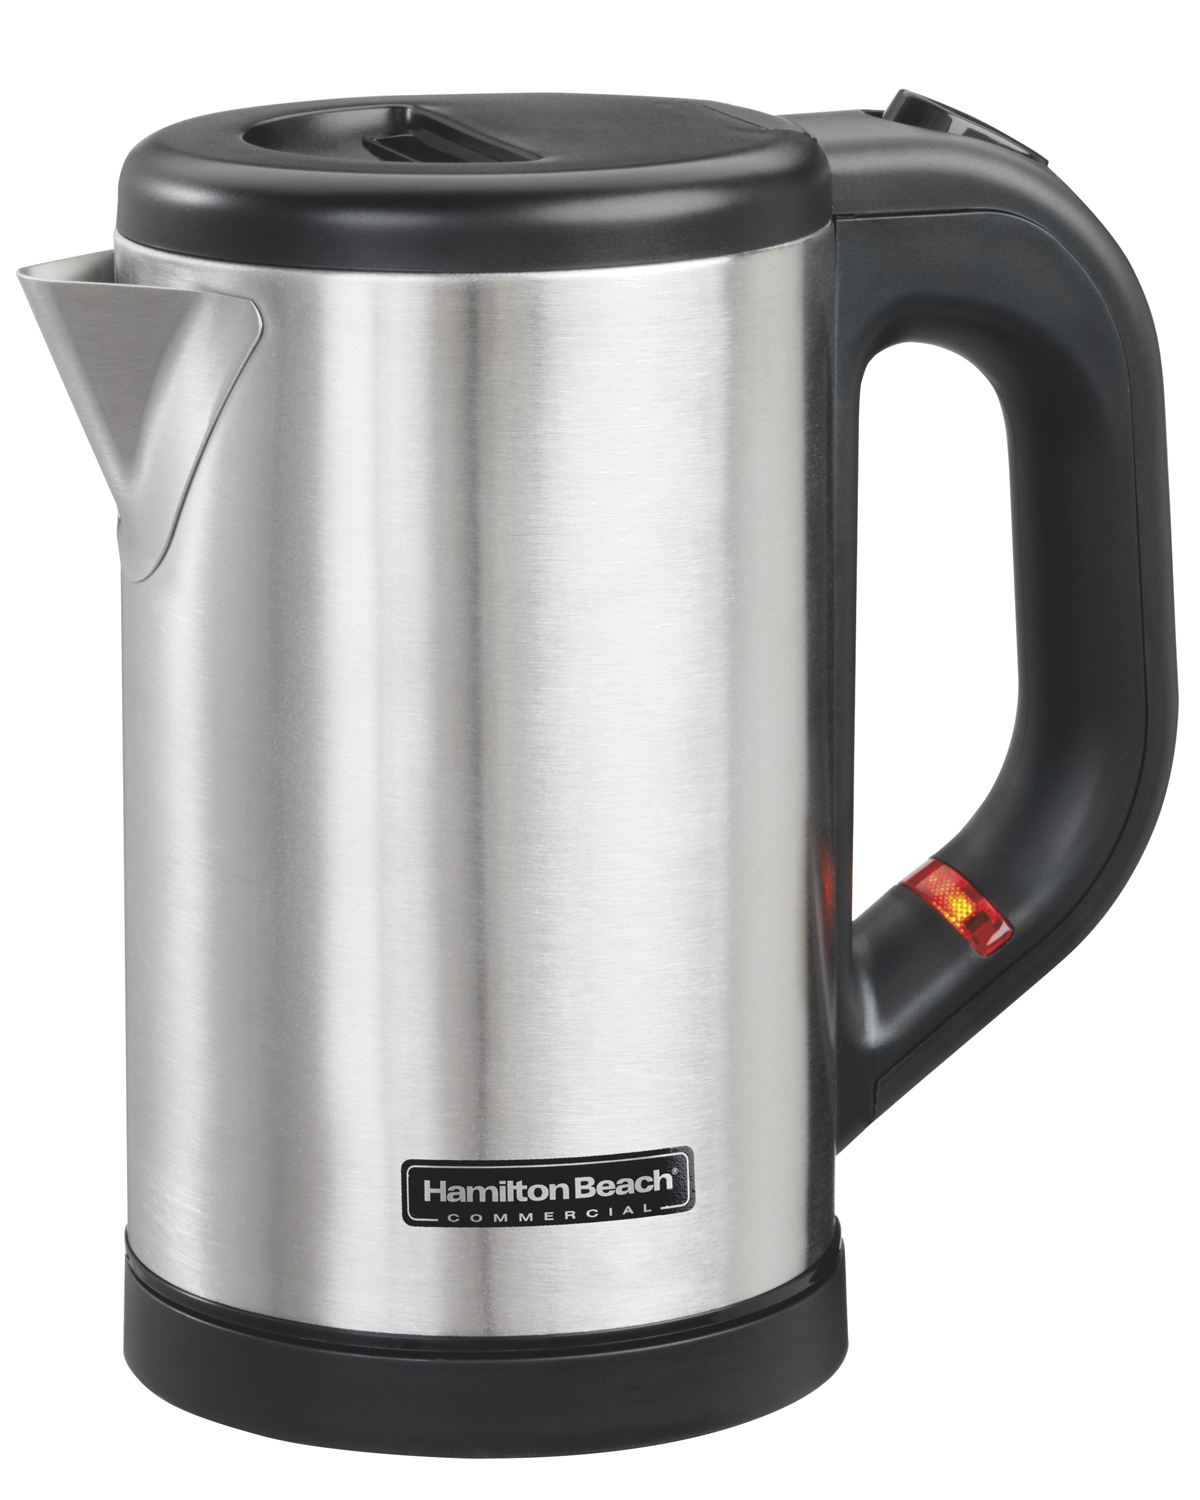 Commercial Kettle - 0.5L Stainless Steel - Hamilton Beach ... on